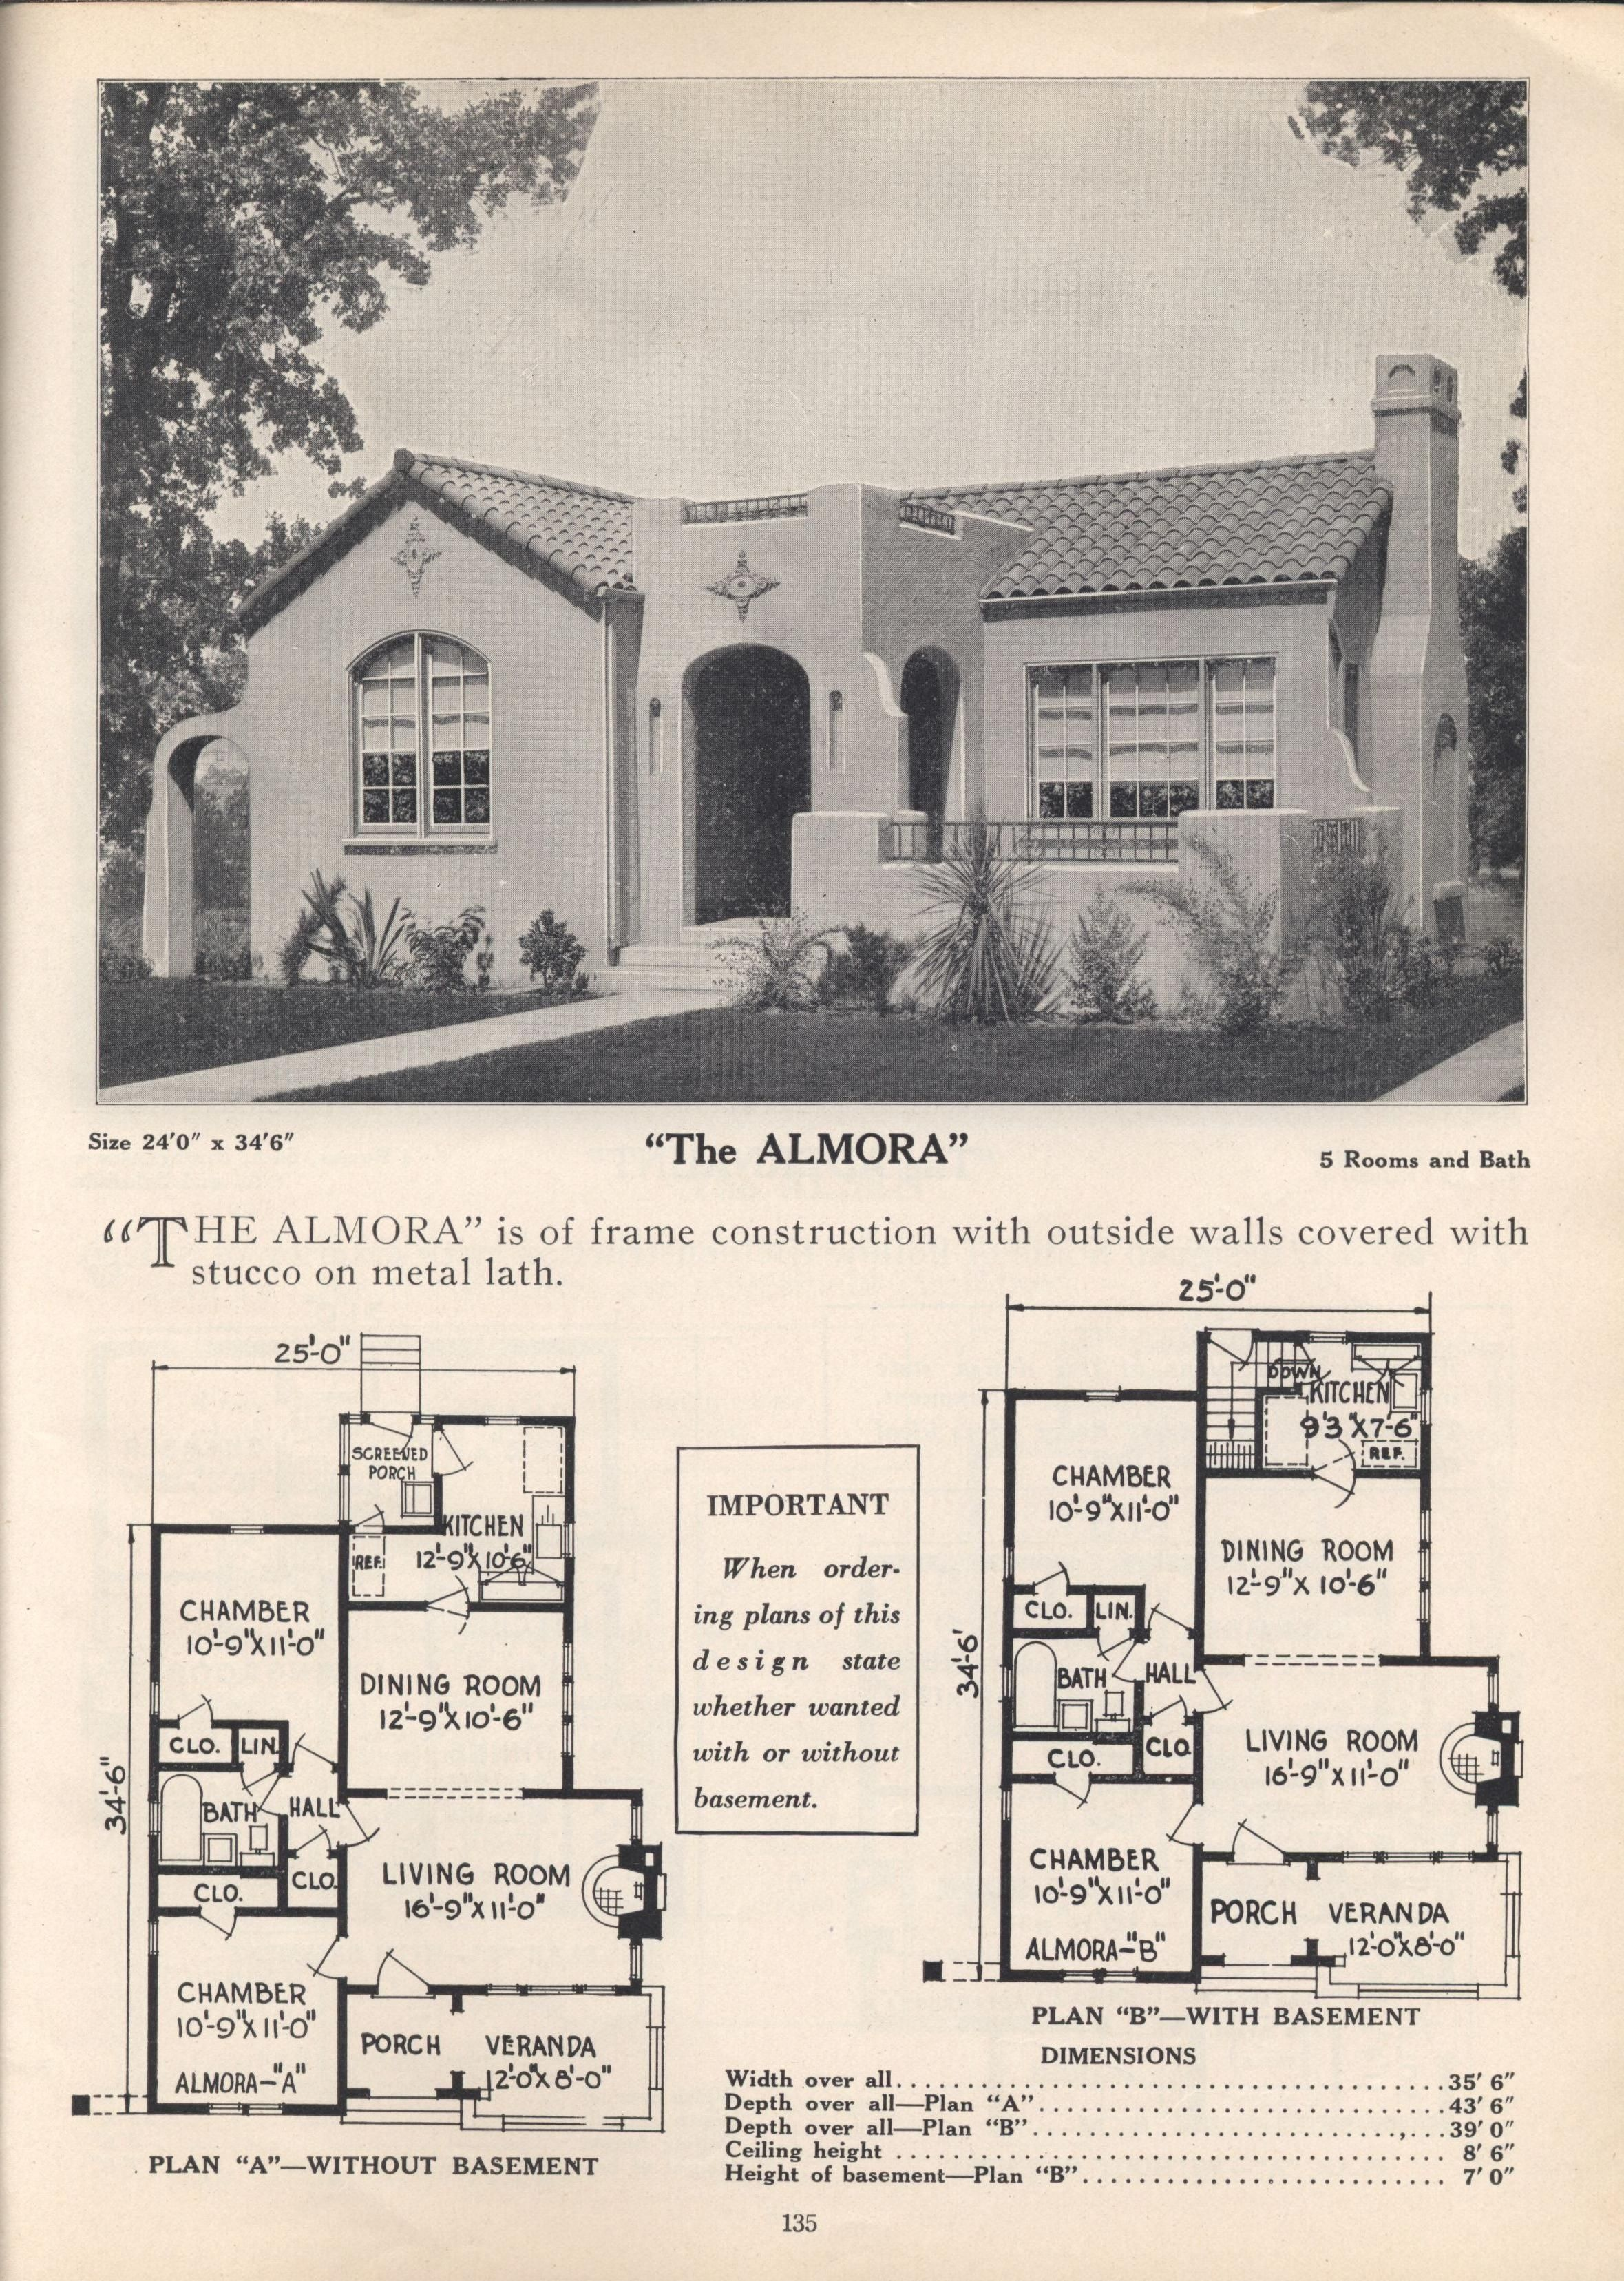 Pin By Whitney Gal On Houses Vintage Plans Spanish Style Homes Mediterranean House Plans Spanish Bungalow